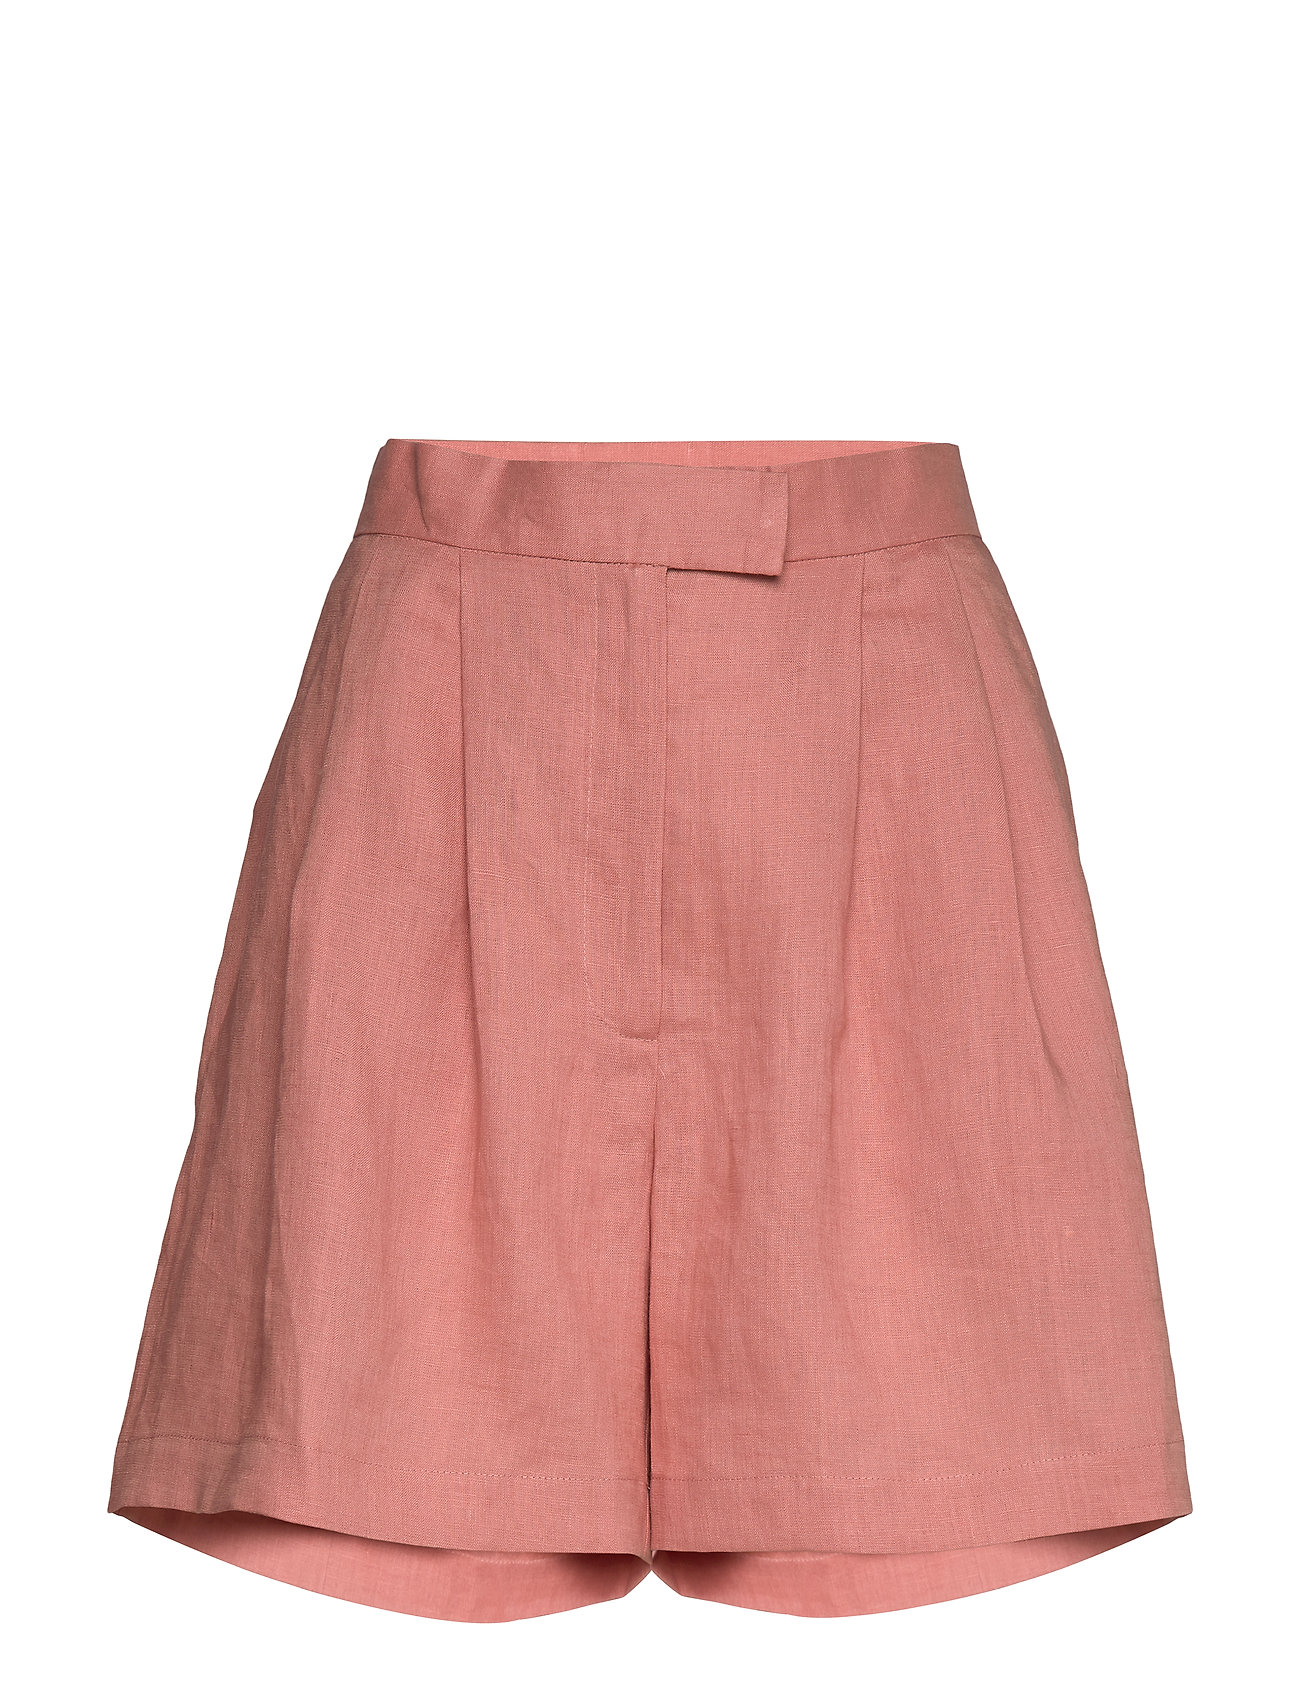 nué notes Papaya Shorts - OLD ROSE